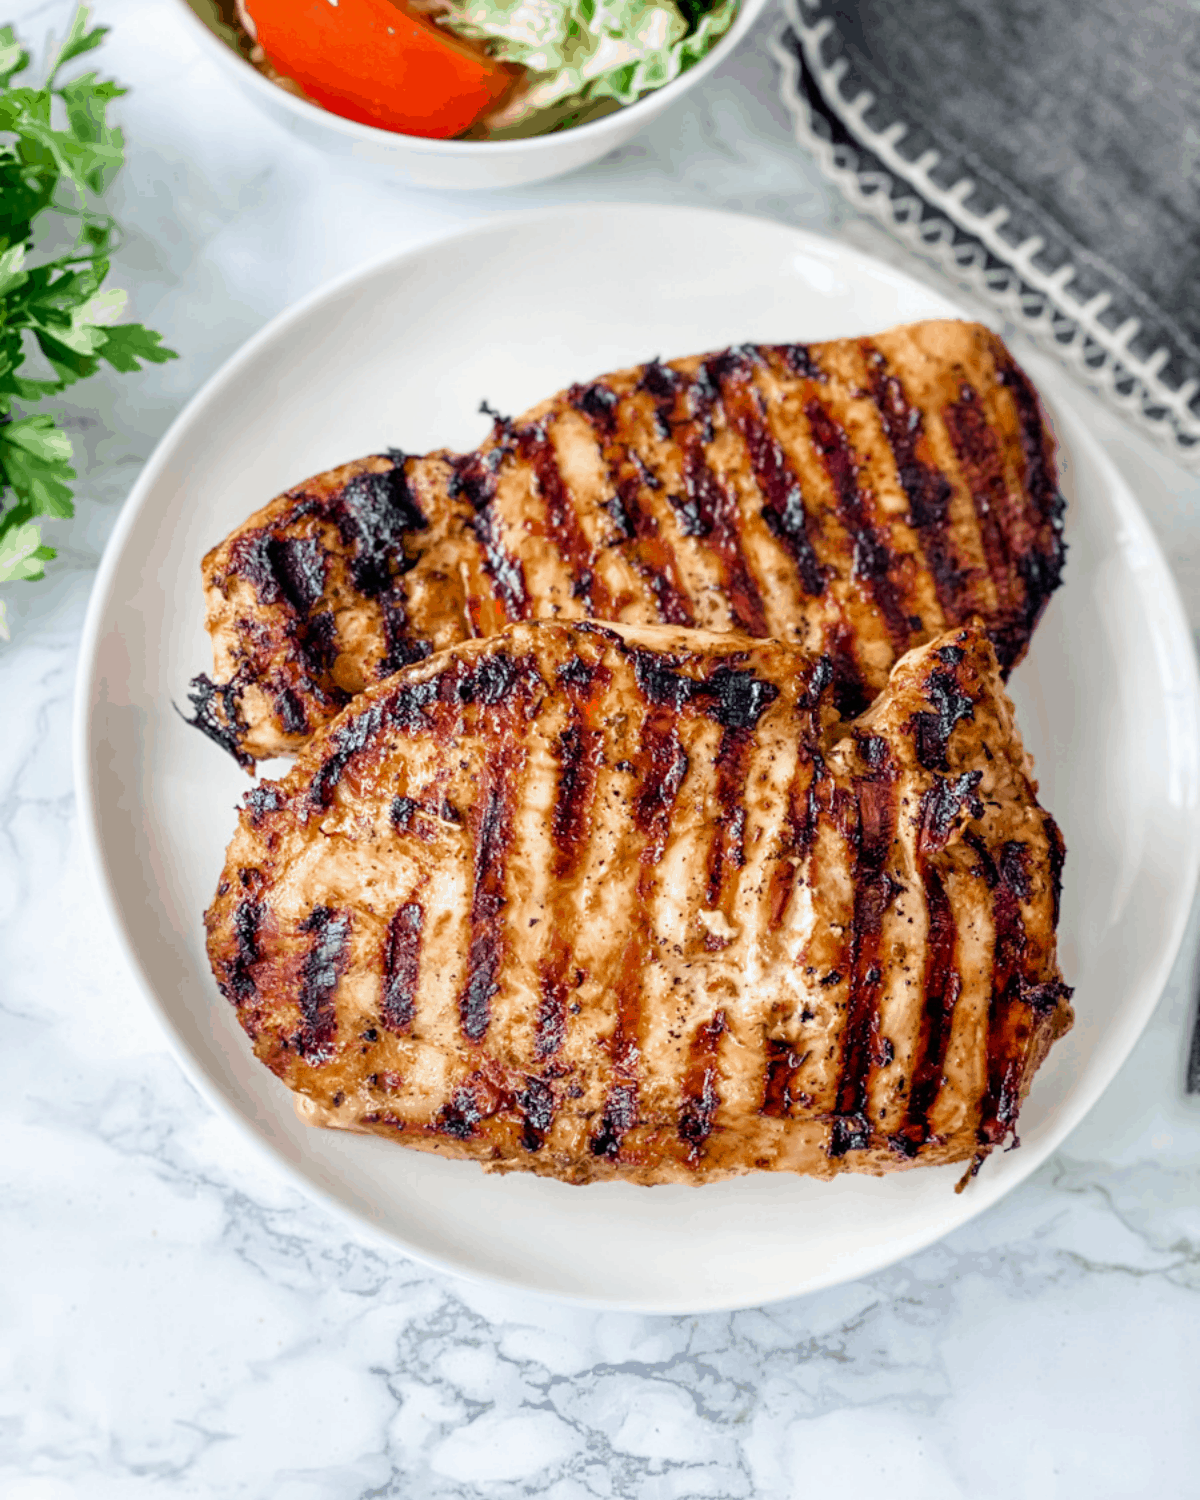 two pieces of grilled chicken on a plate